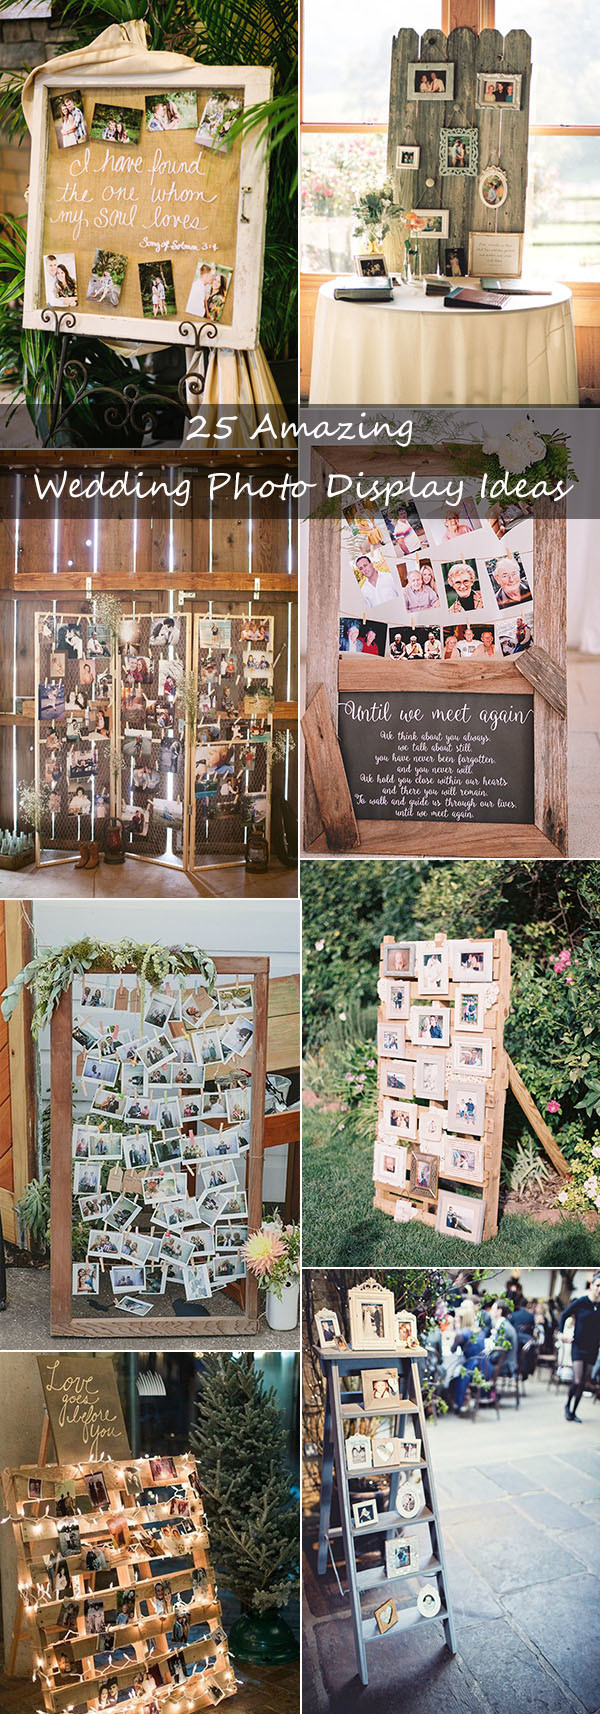 25 amazing wedding photo display ideas